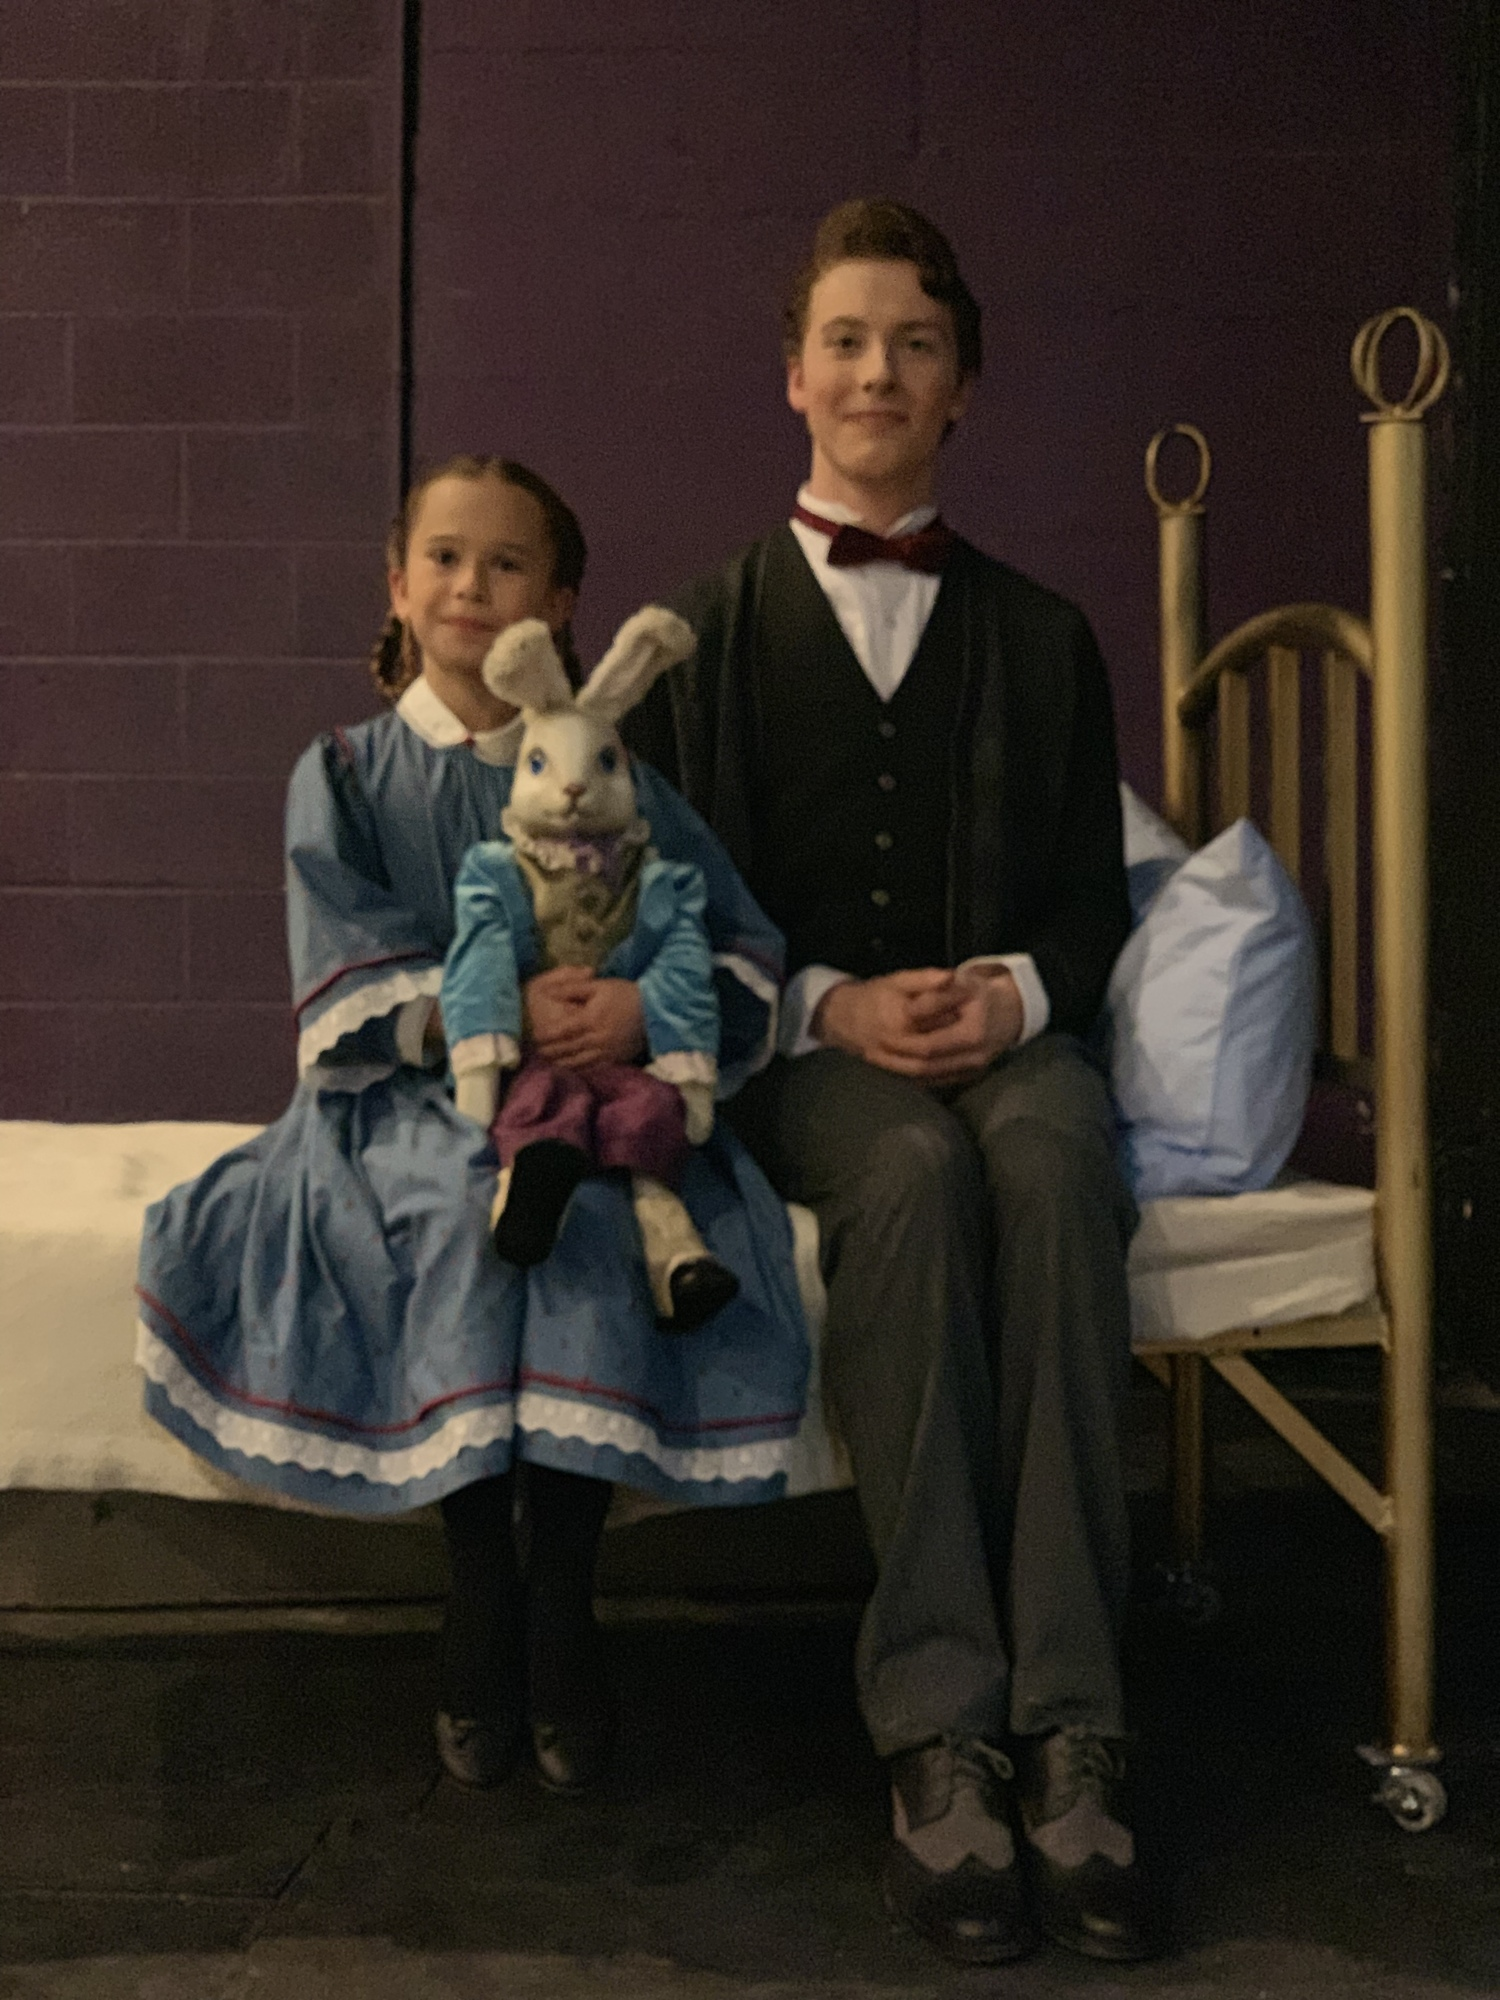 Valley Youth Theatre Opens New Play This Friday